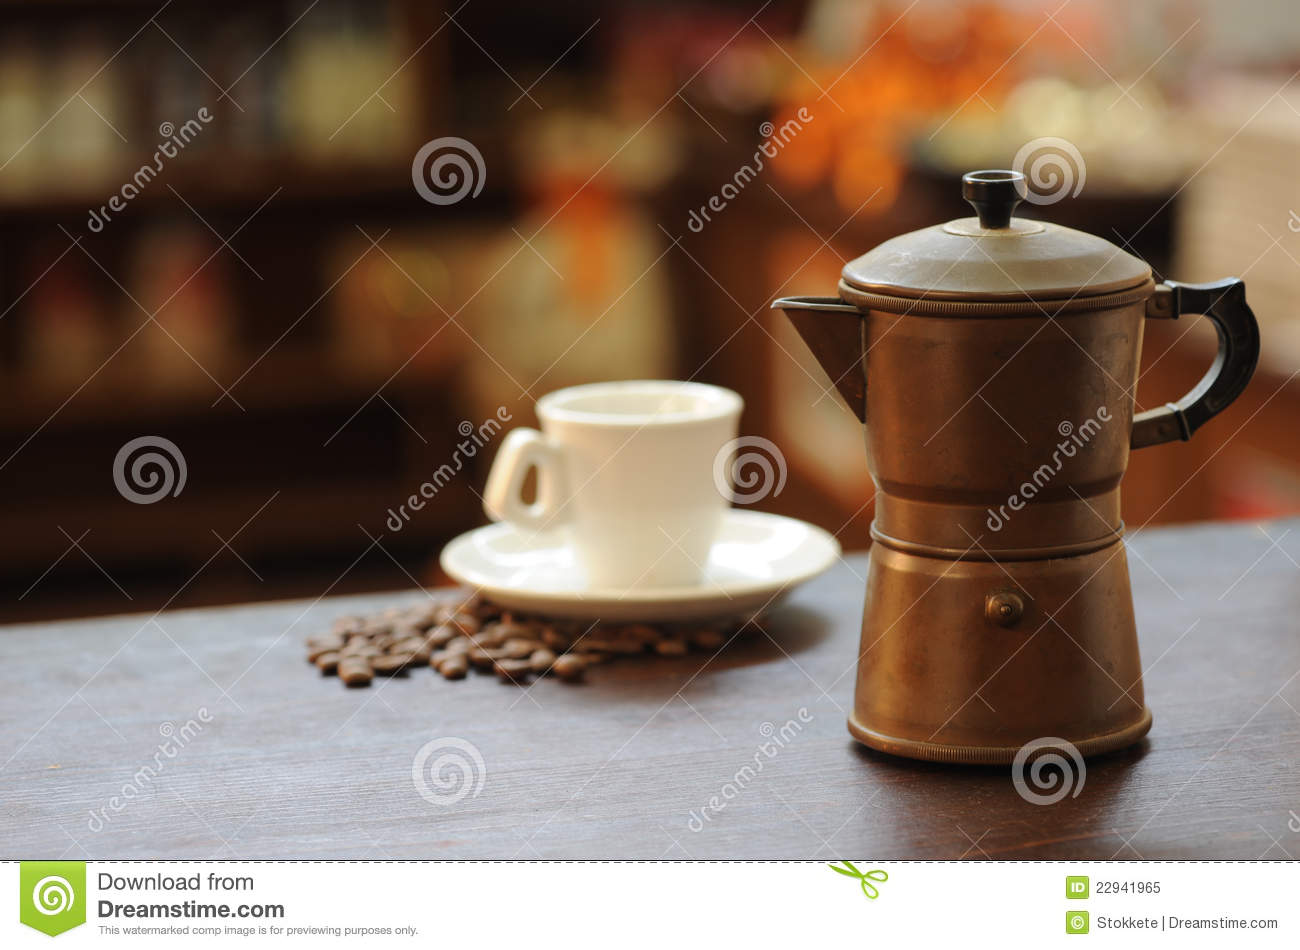 Old Mr Coffee Maker : Old Coffee Maker Royalty Free Stock Photo - Image: 22941965